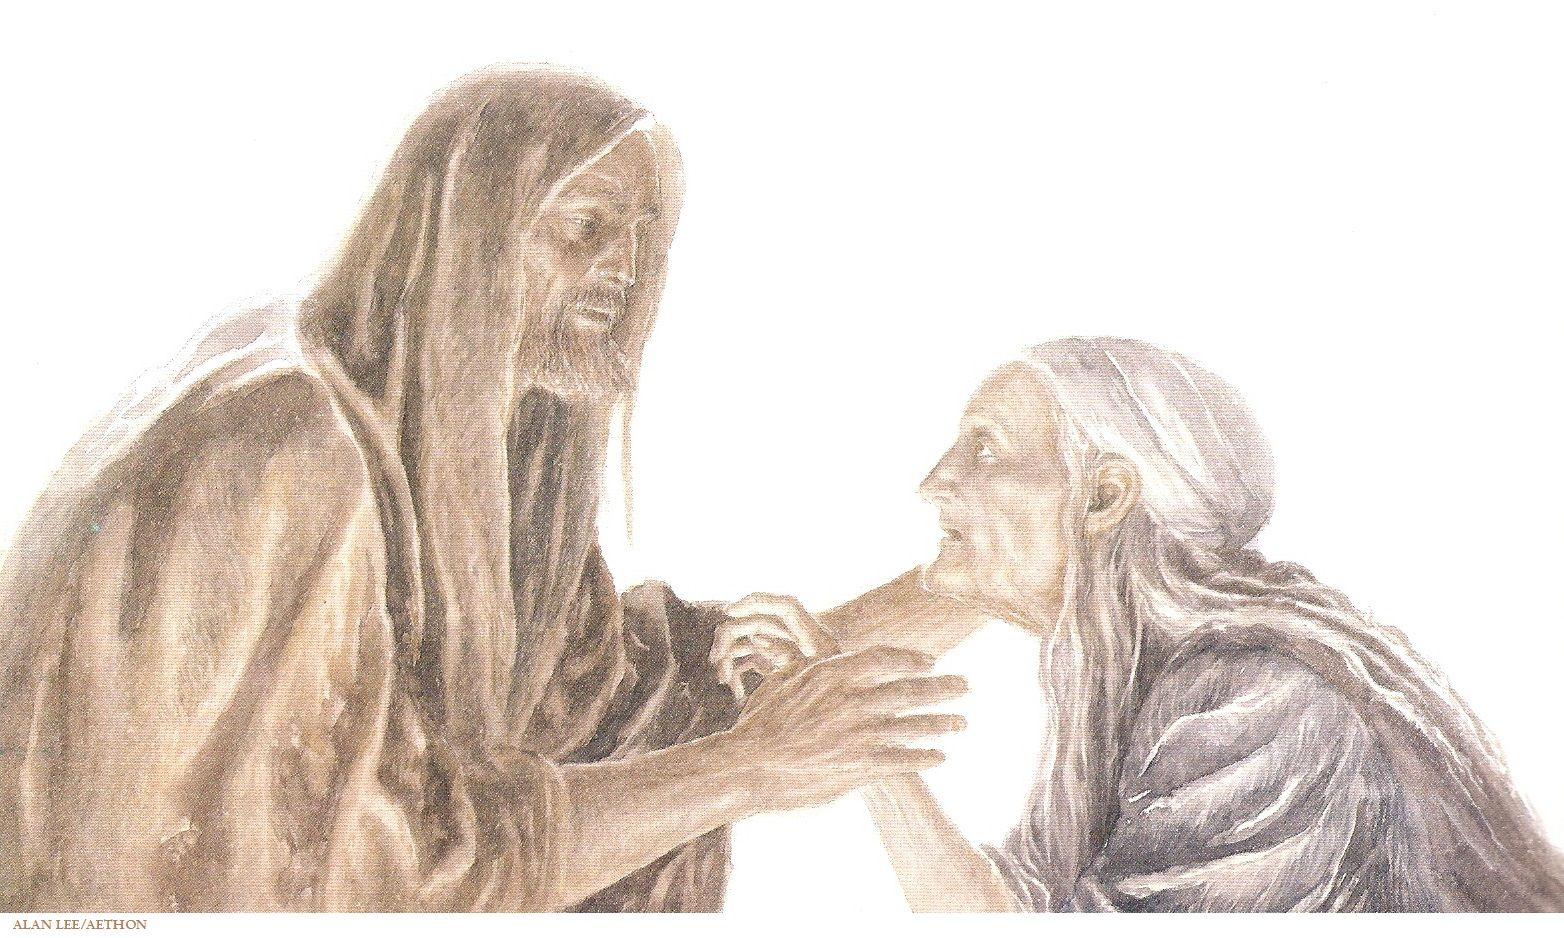 Odysseus & Eurycleia. The well-known episode of the footbath during which Eurýkleia recognizes Odysseus by his scar, but he throttles her and keeps her quiet. - Homer's Odyssey, Book 19, Robert Fitzgerald (Alan Lee/user: Aethon)